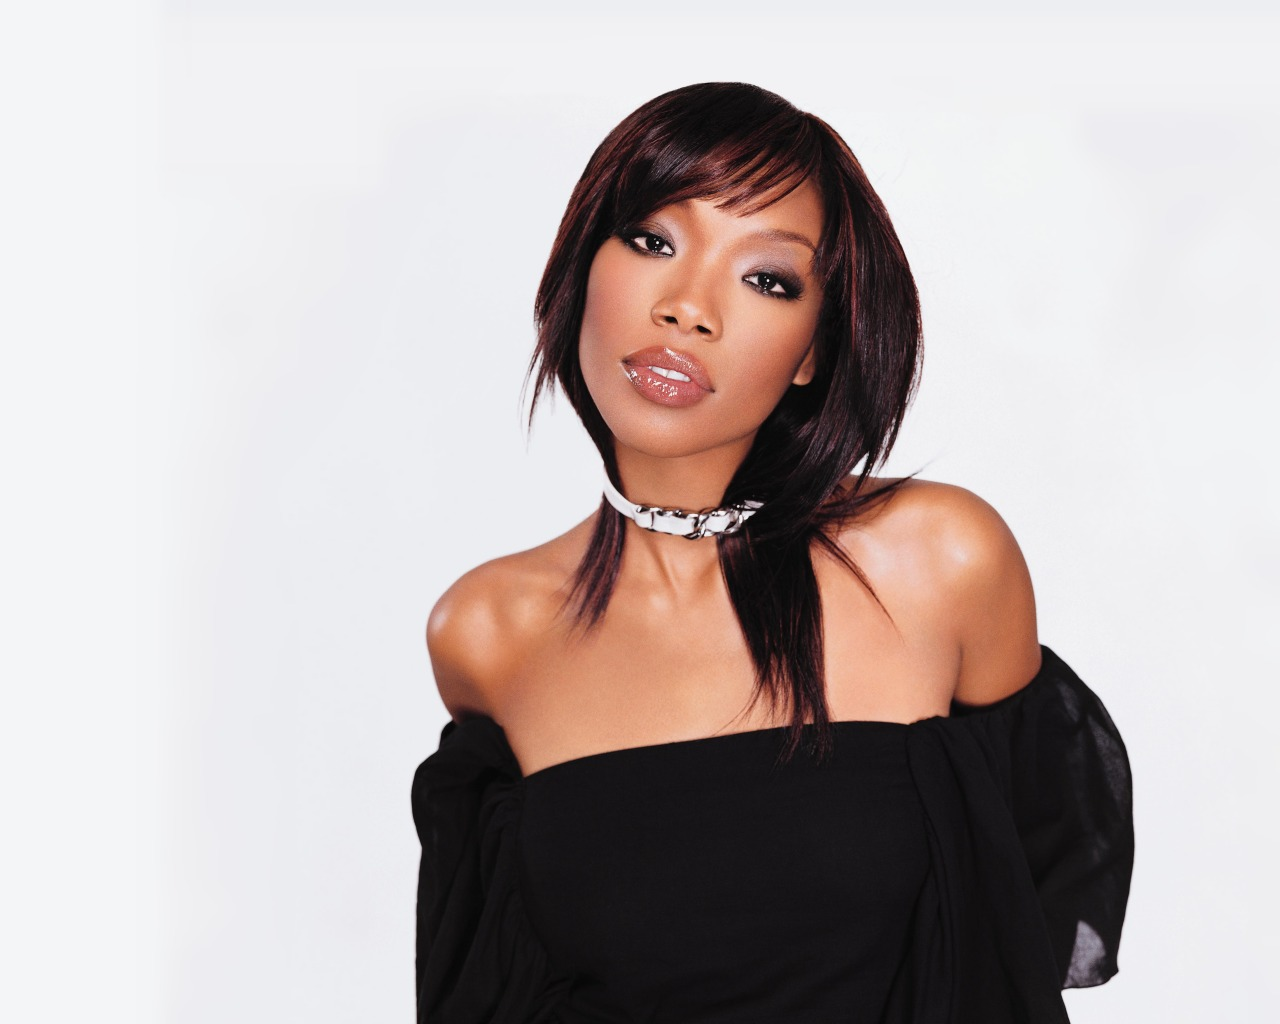 Brandy_Norwood_04_1280x1024.jpg